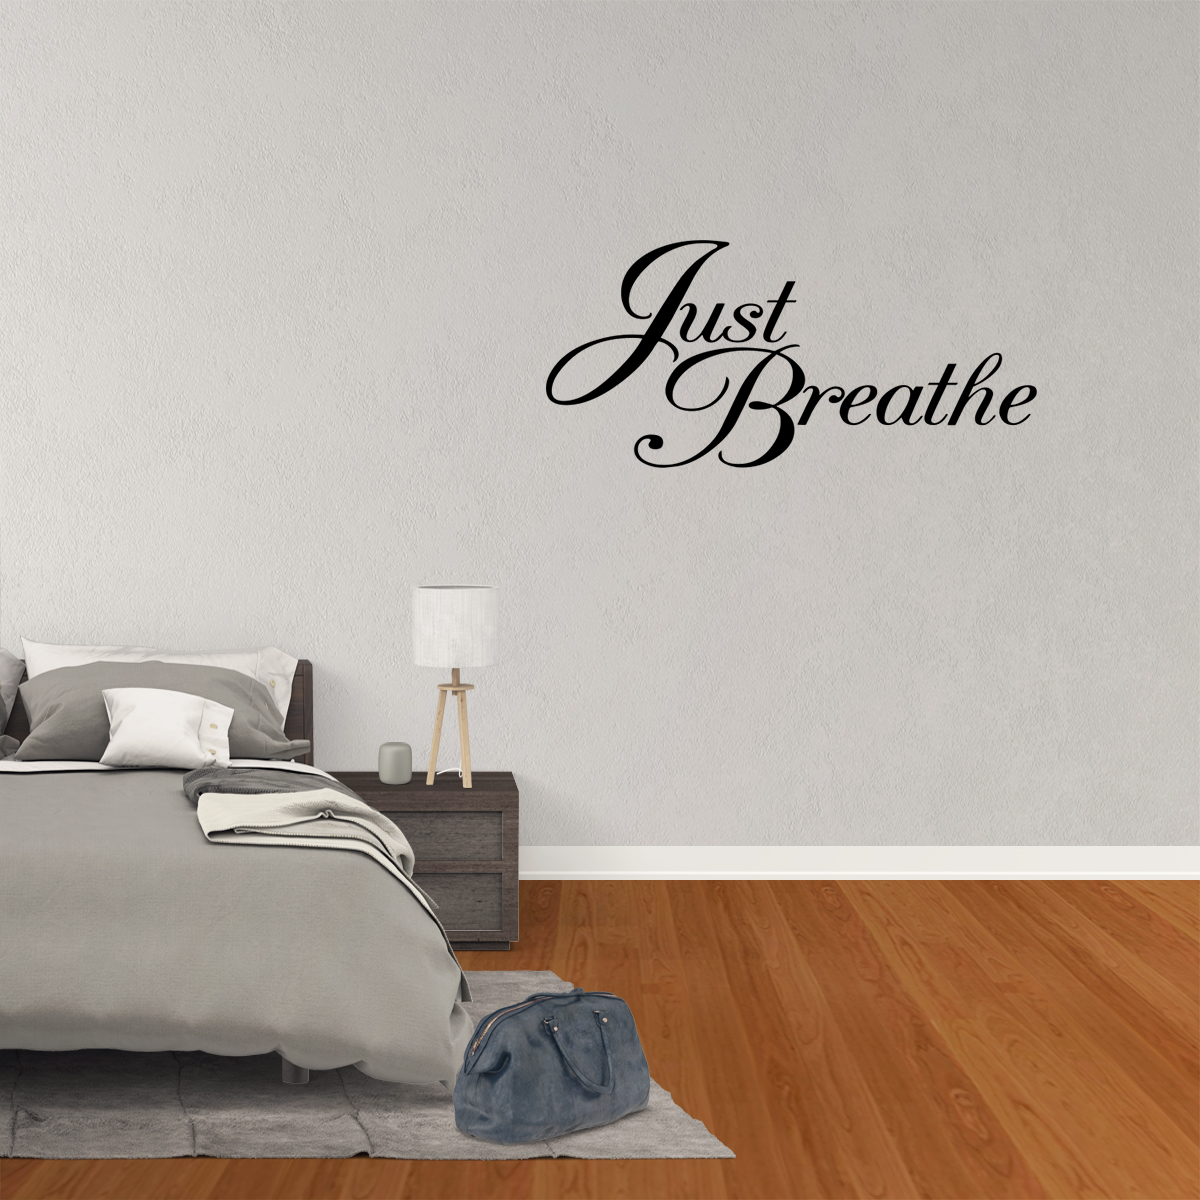 Just Breathe Cute Words Decor Vinyl Wall Decal Quote Sticker Inspiration J607